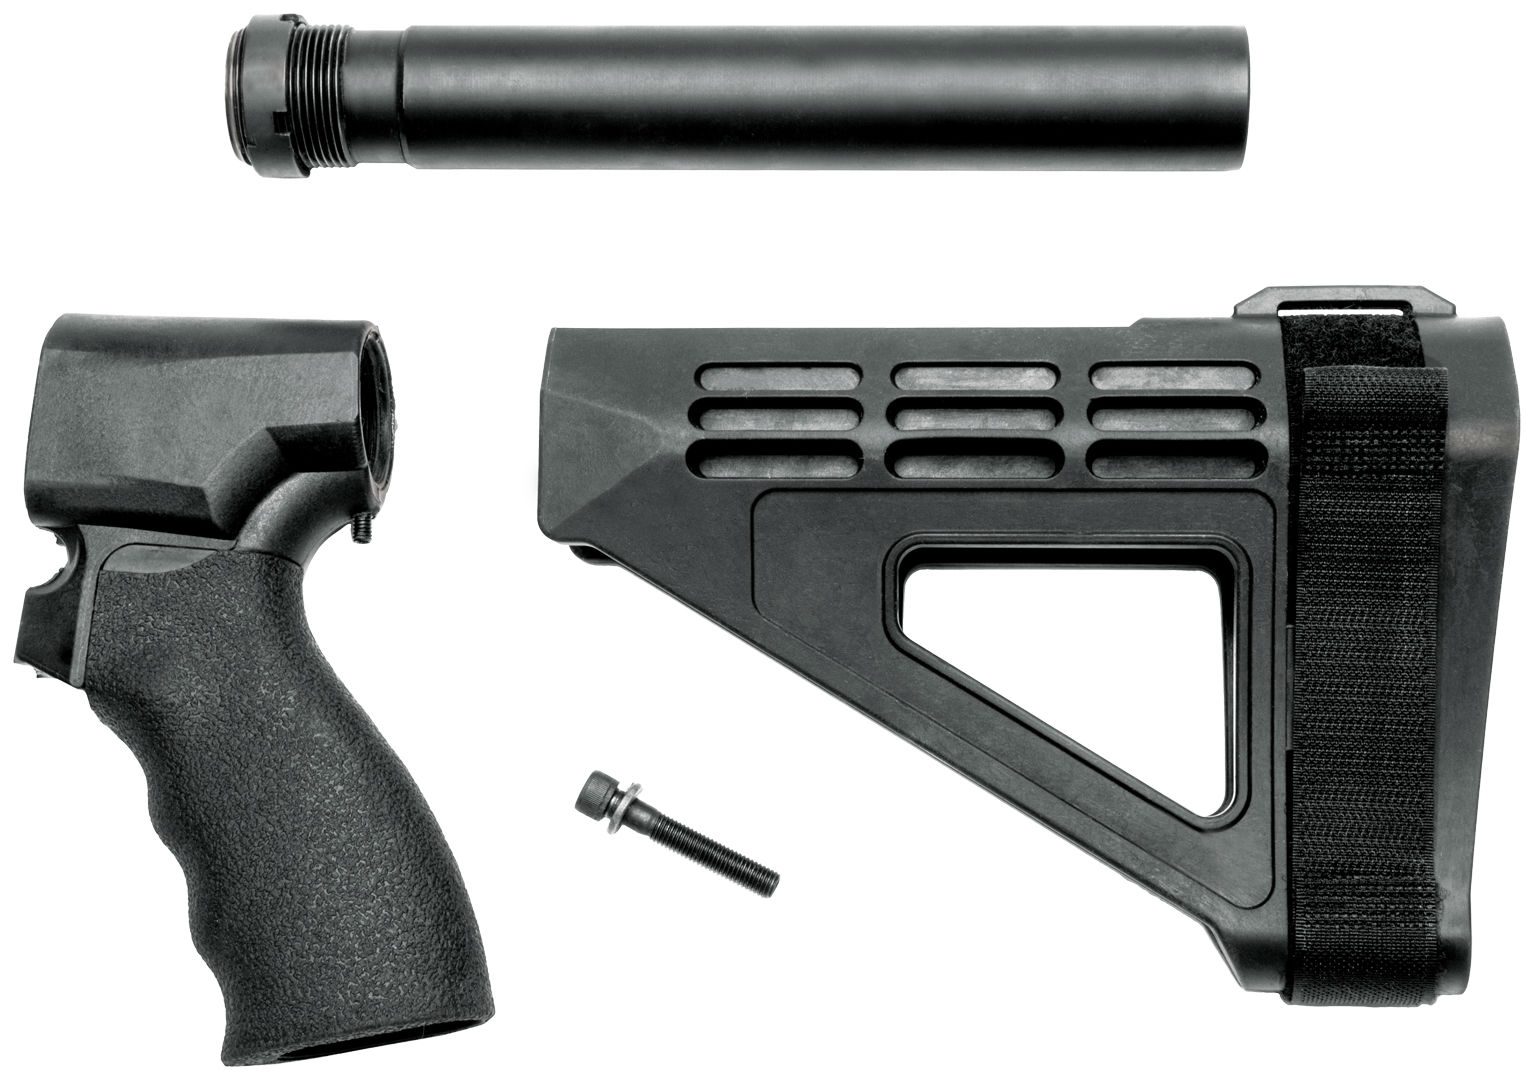 SB Tactical TAC14-SBM4 Stabilizing Brace Kit for Remington TAC-14